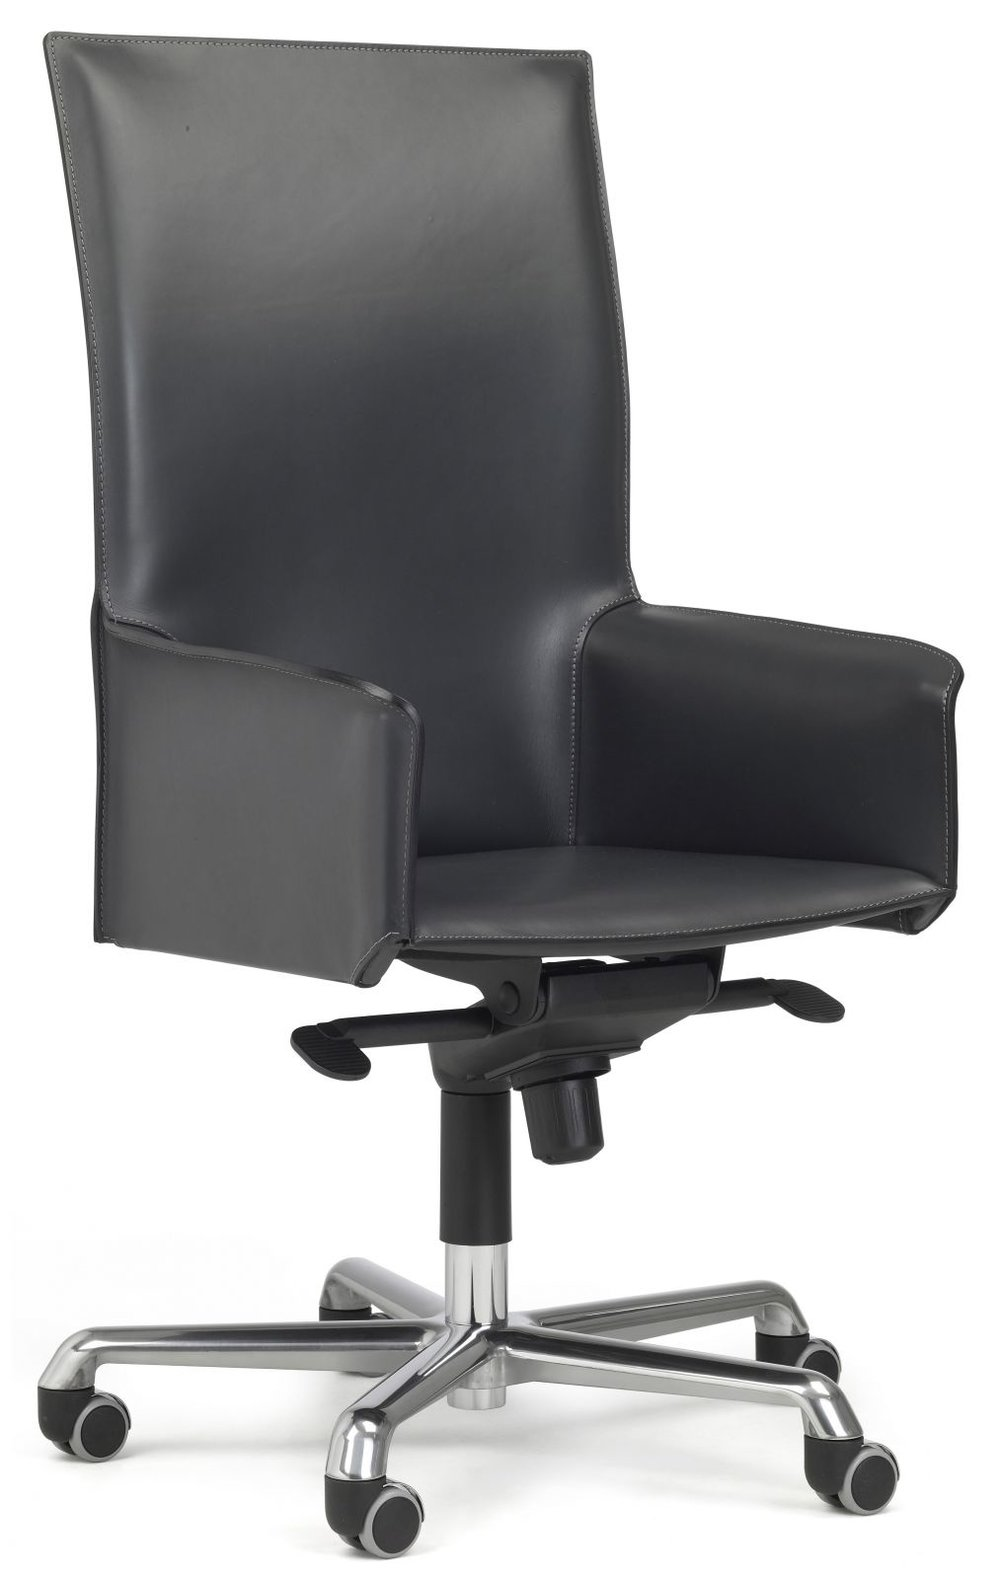 MOF 01 Modern Office Chair